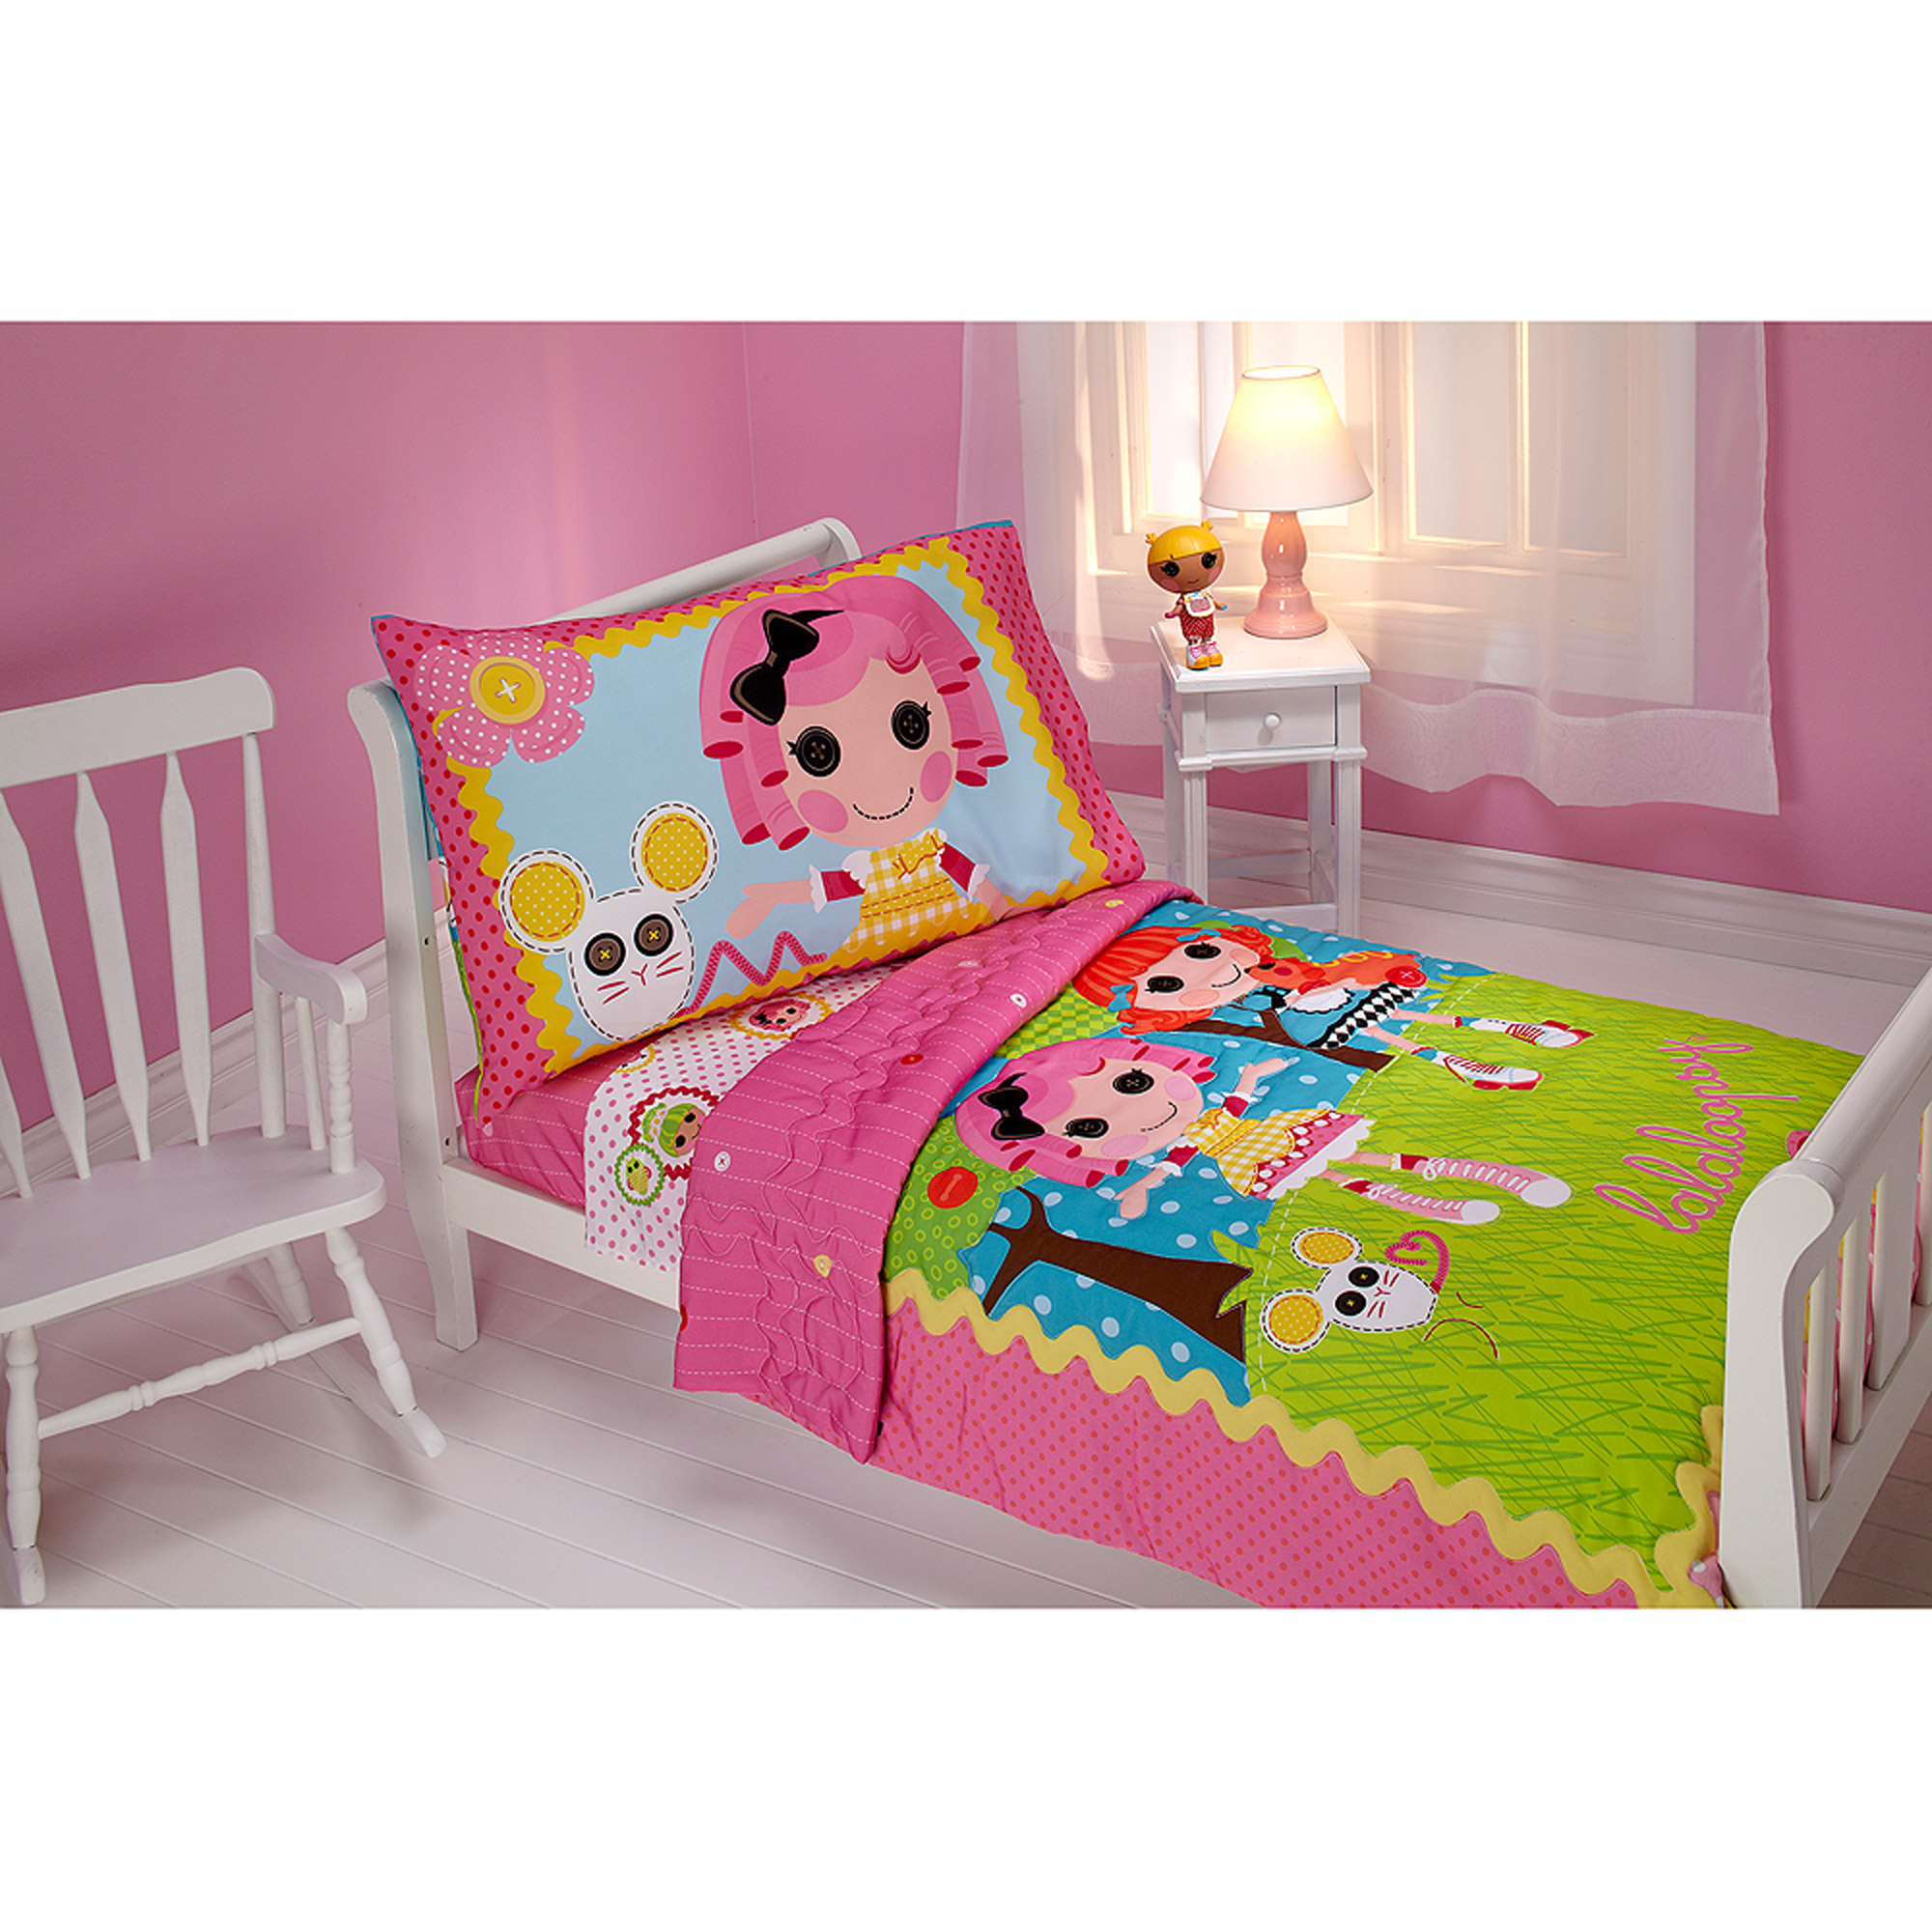 Lalaloopsy Sew Cute 4 Piece Toddler Bed Set